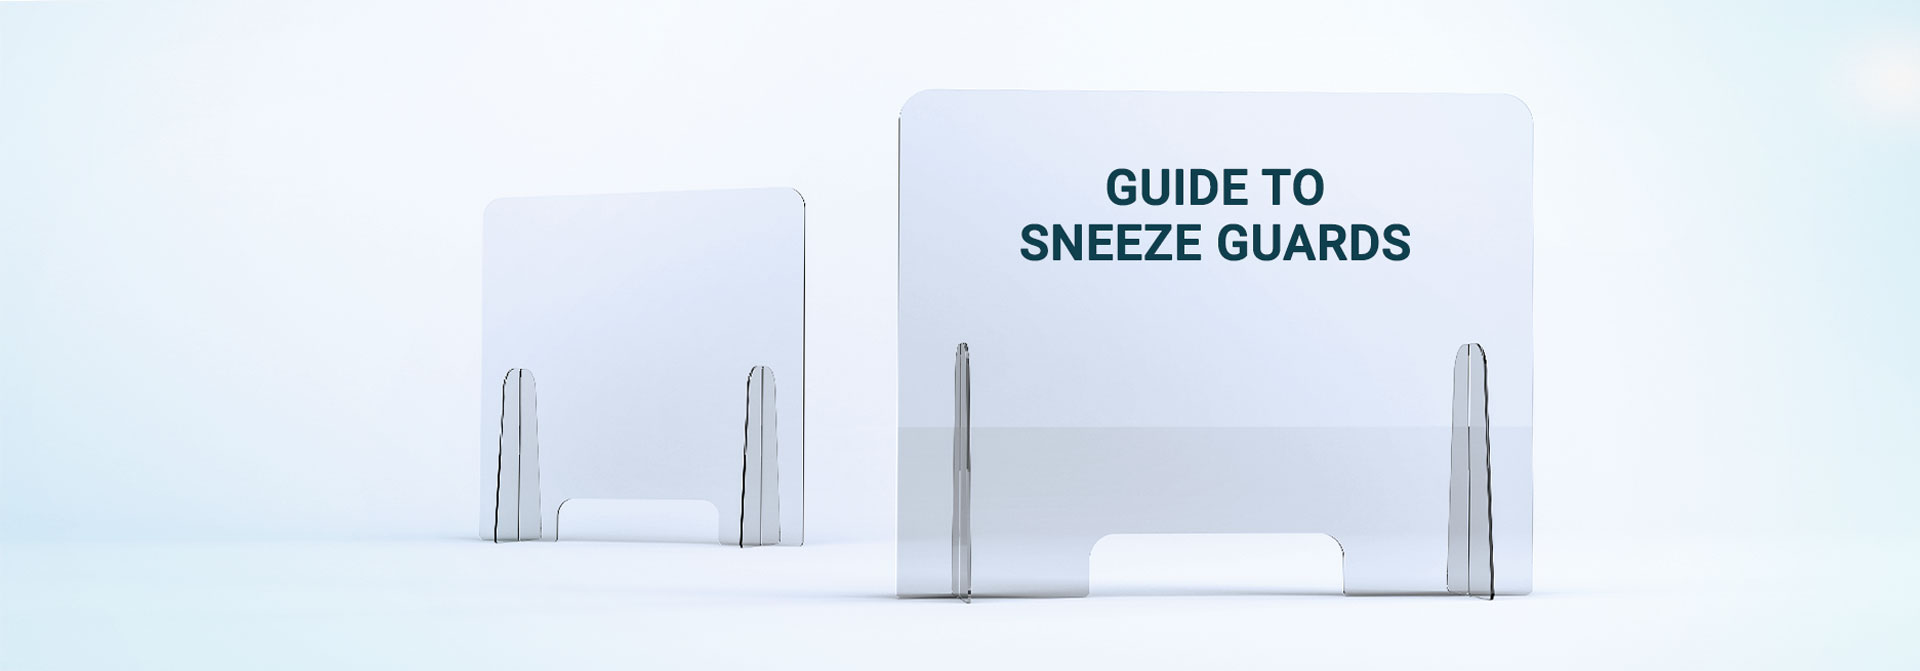 guide to sneeze guards: a to z about sneeze guards